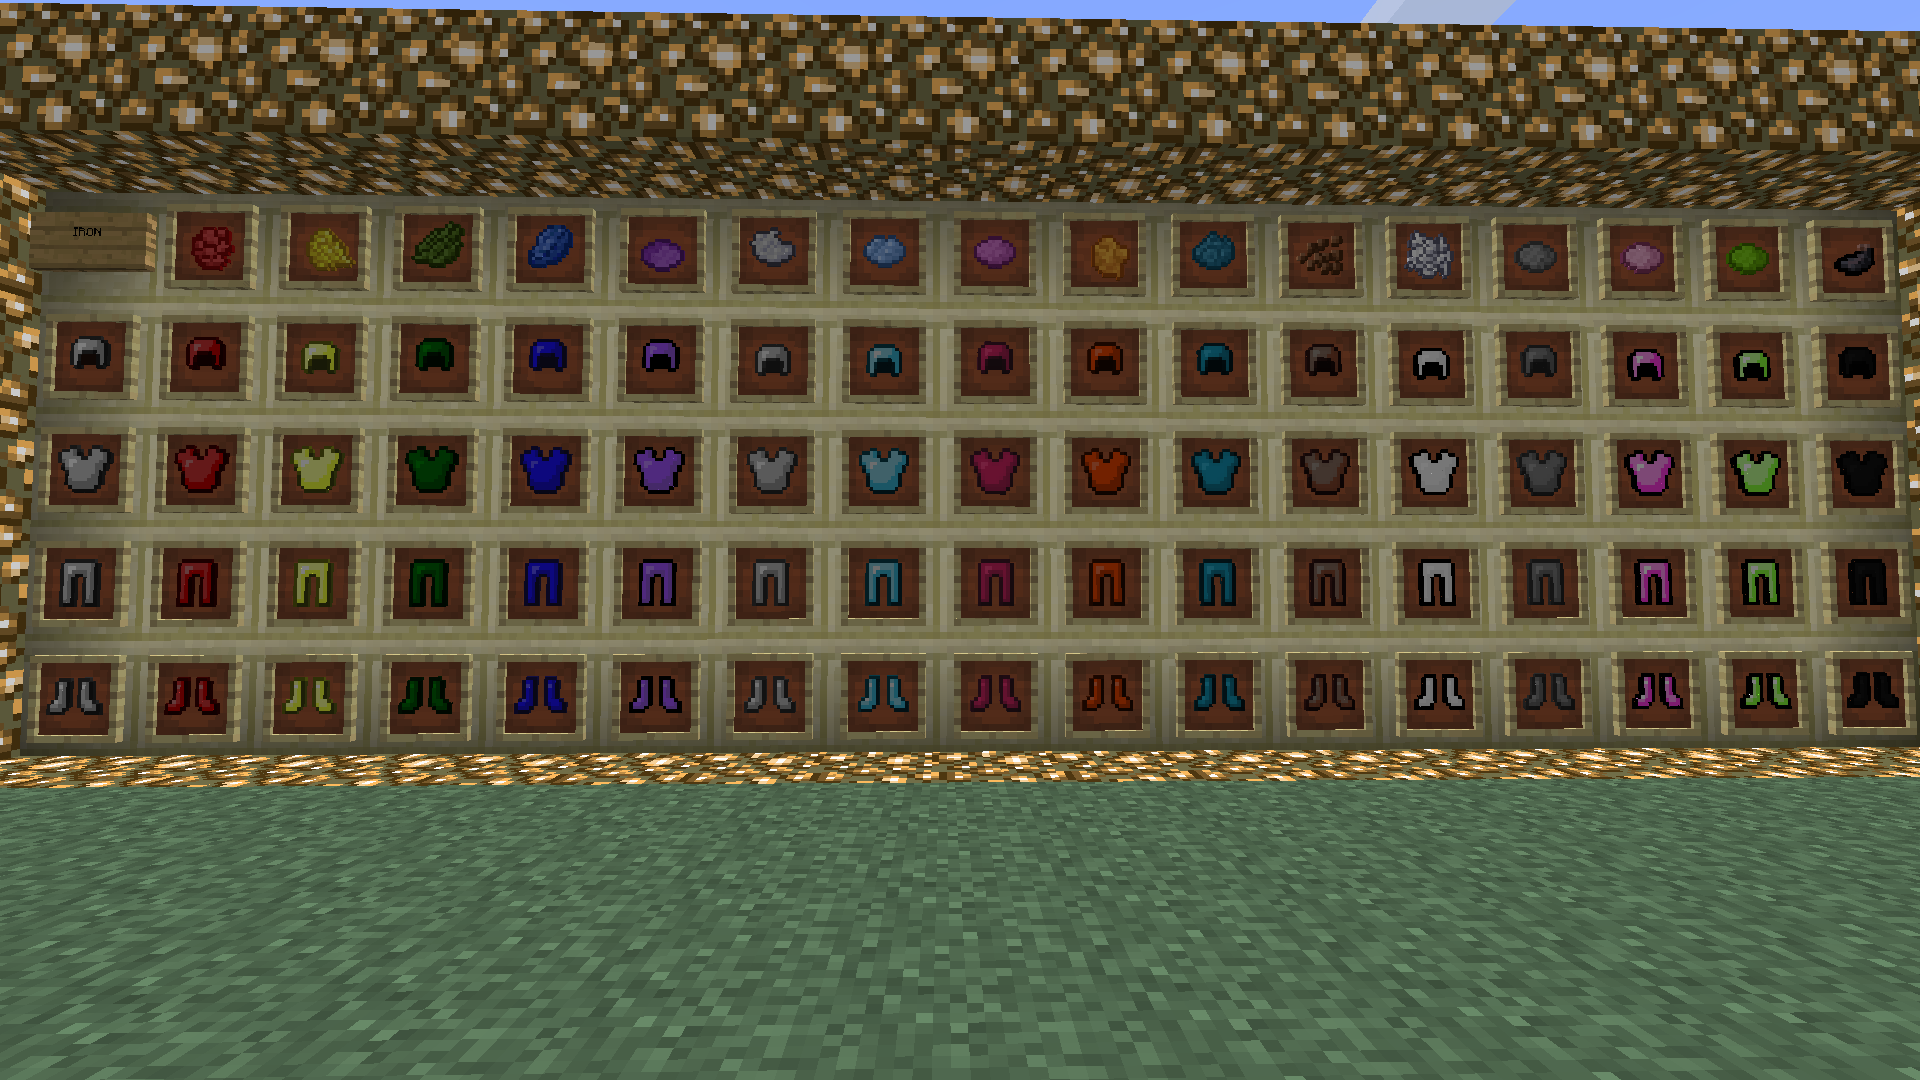 http://minecraft-forum.net/wp-content/uploads/2013/05/2adcf__Colorful-Armor-Mod-2.png